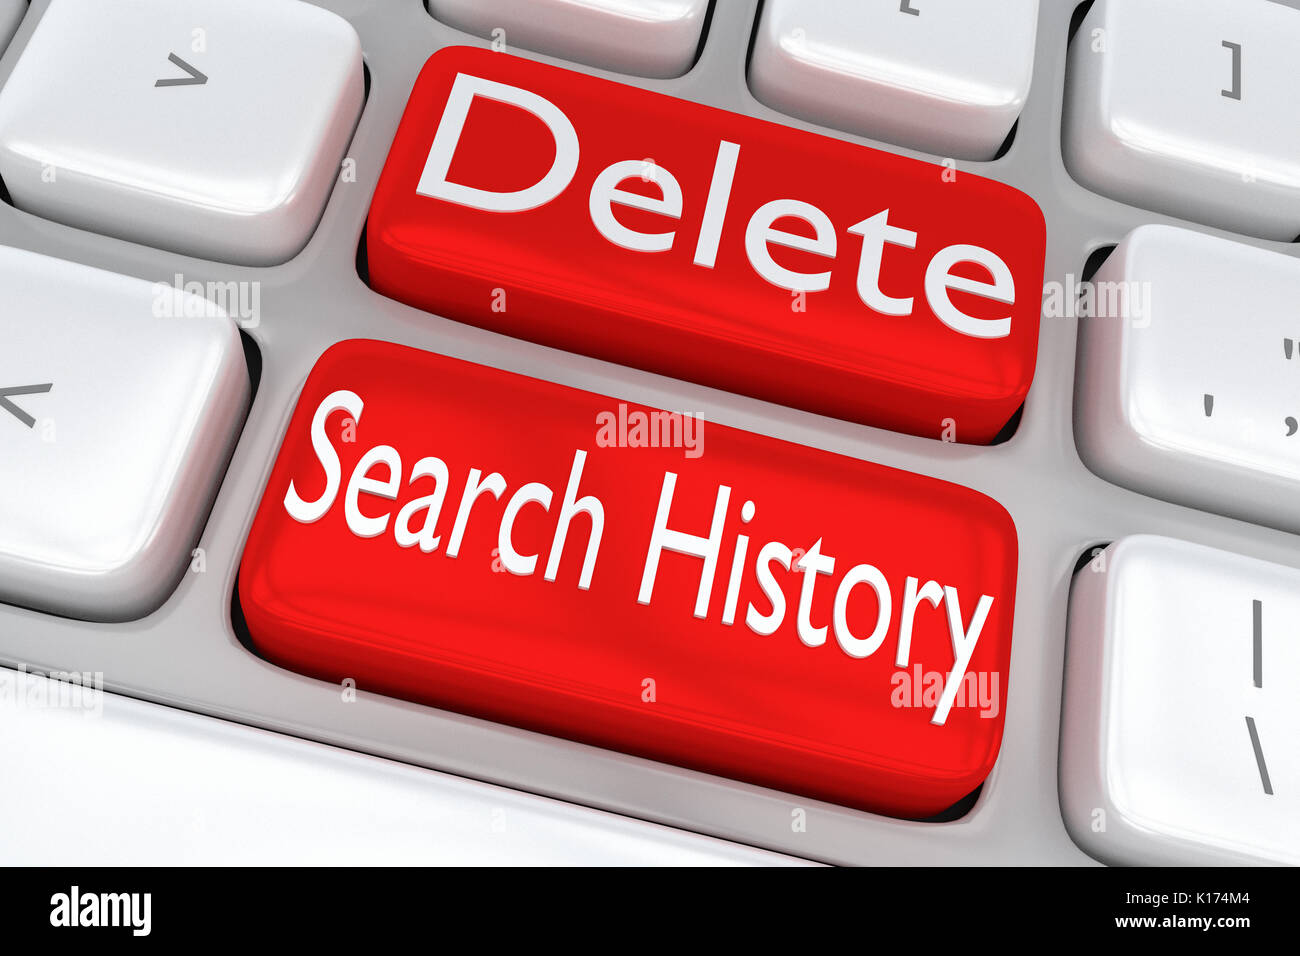 how to delete history on samsung keyboard